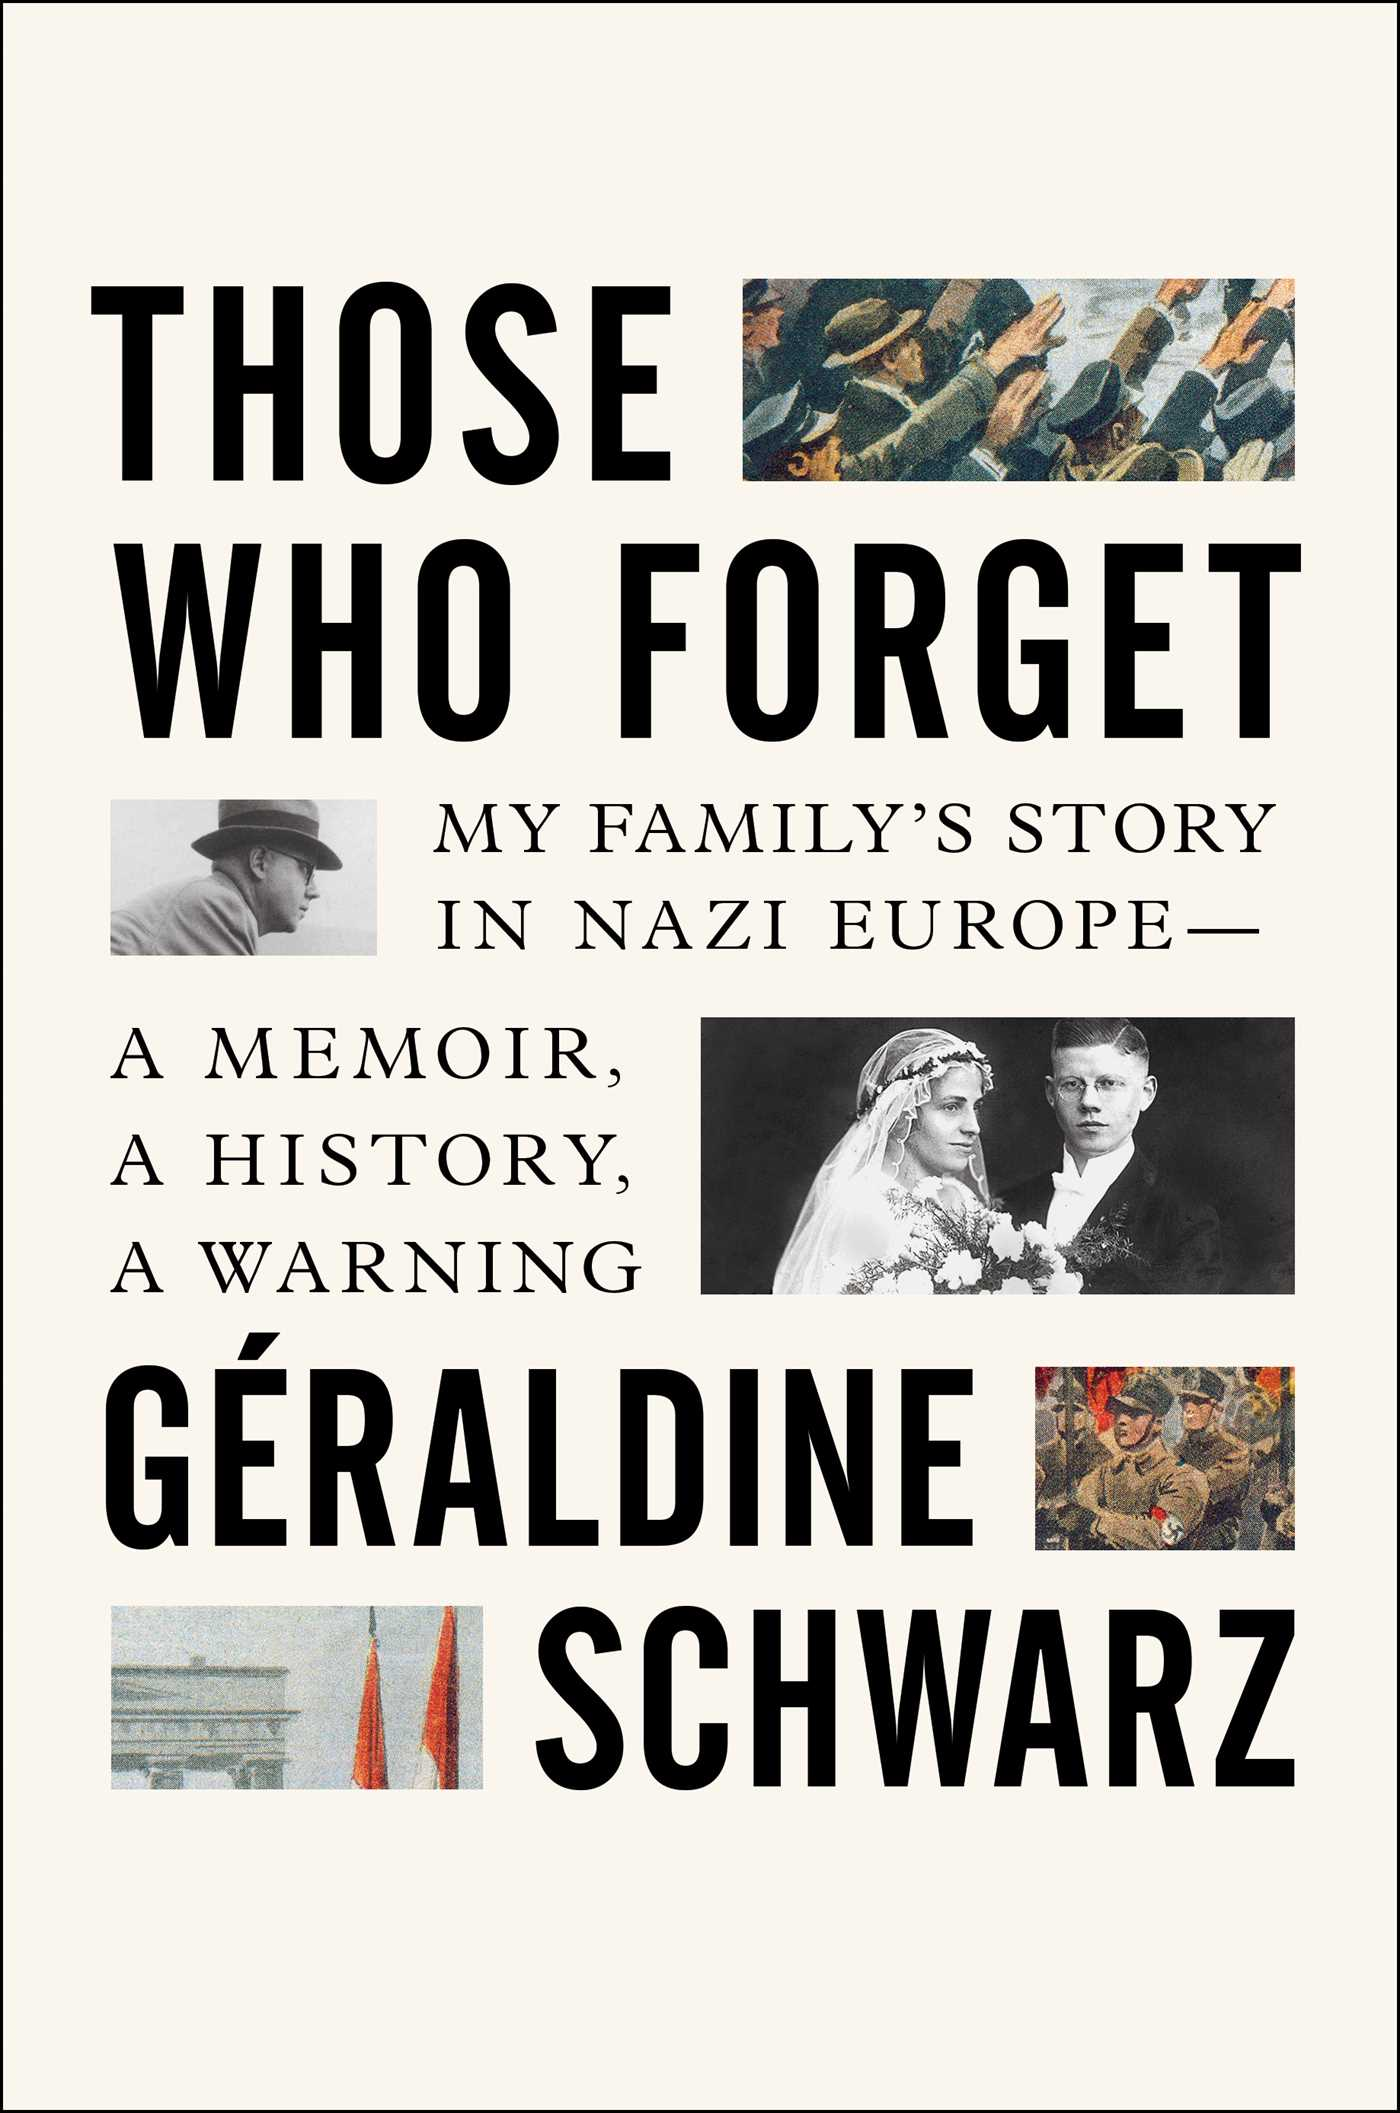 Those Who Forget: My Family's Story in Nazi Europe – A Memoir, A History, A Warning